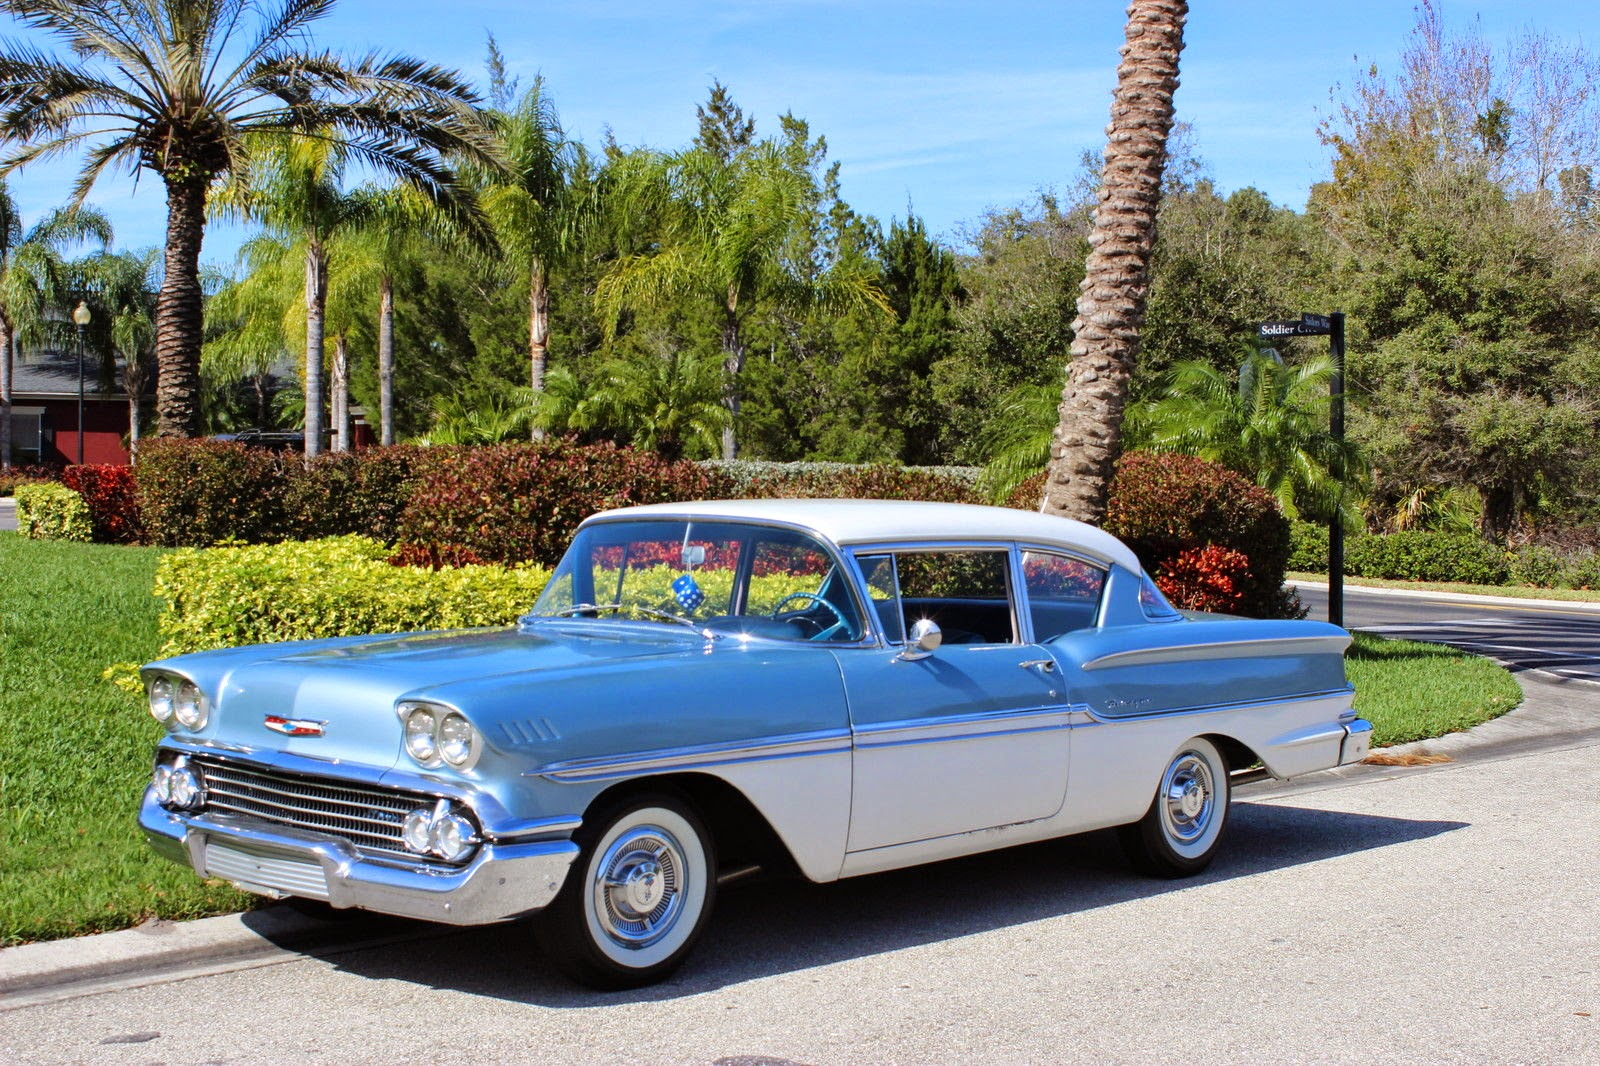 All American Classic Cars 1958 Chevrolet Biscayne 2 Door